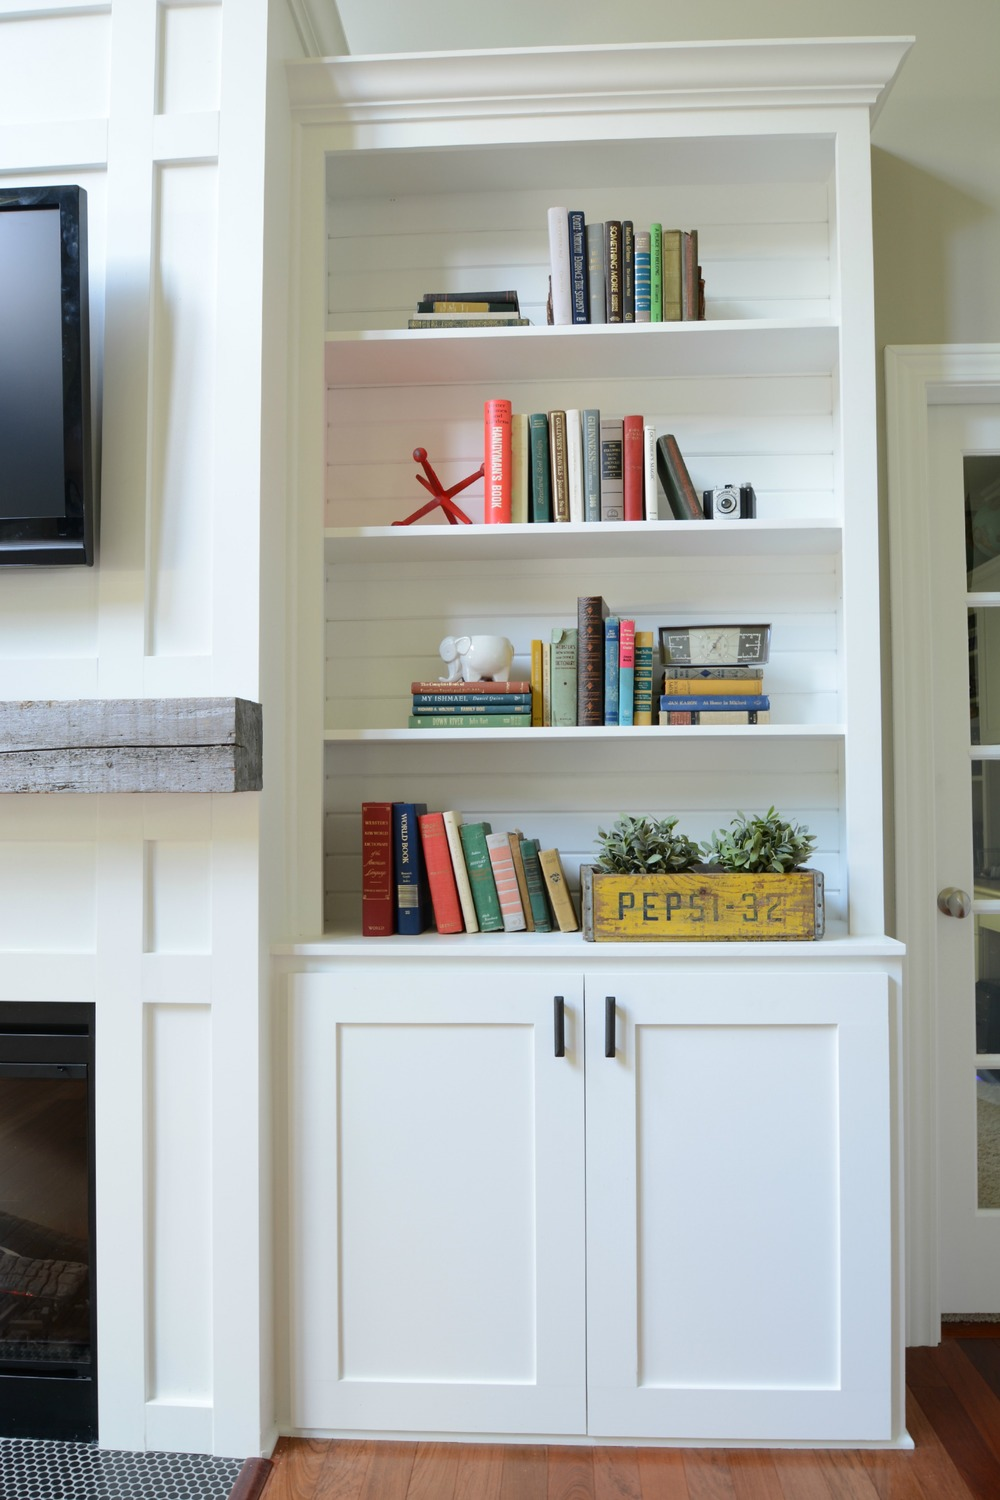 Living Room BuiltIn Cabinets Decor and the Dog